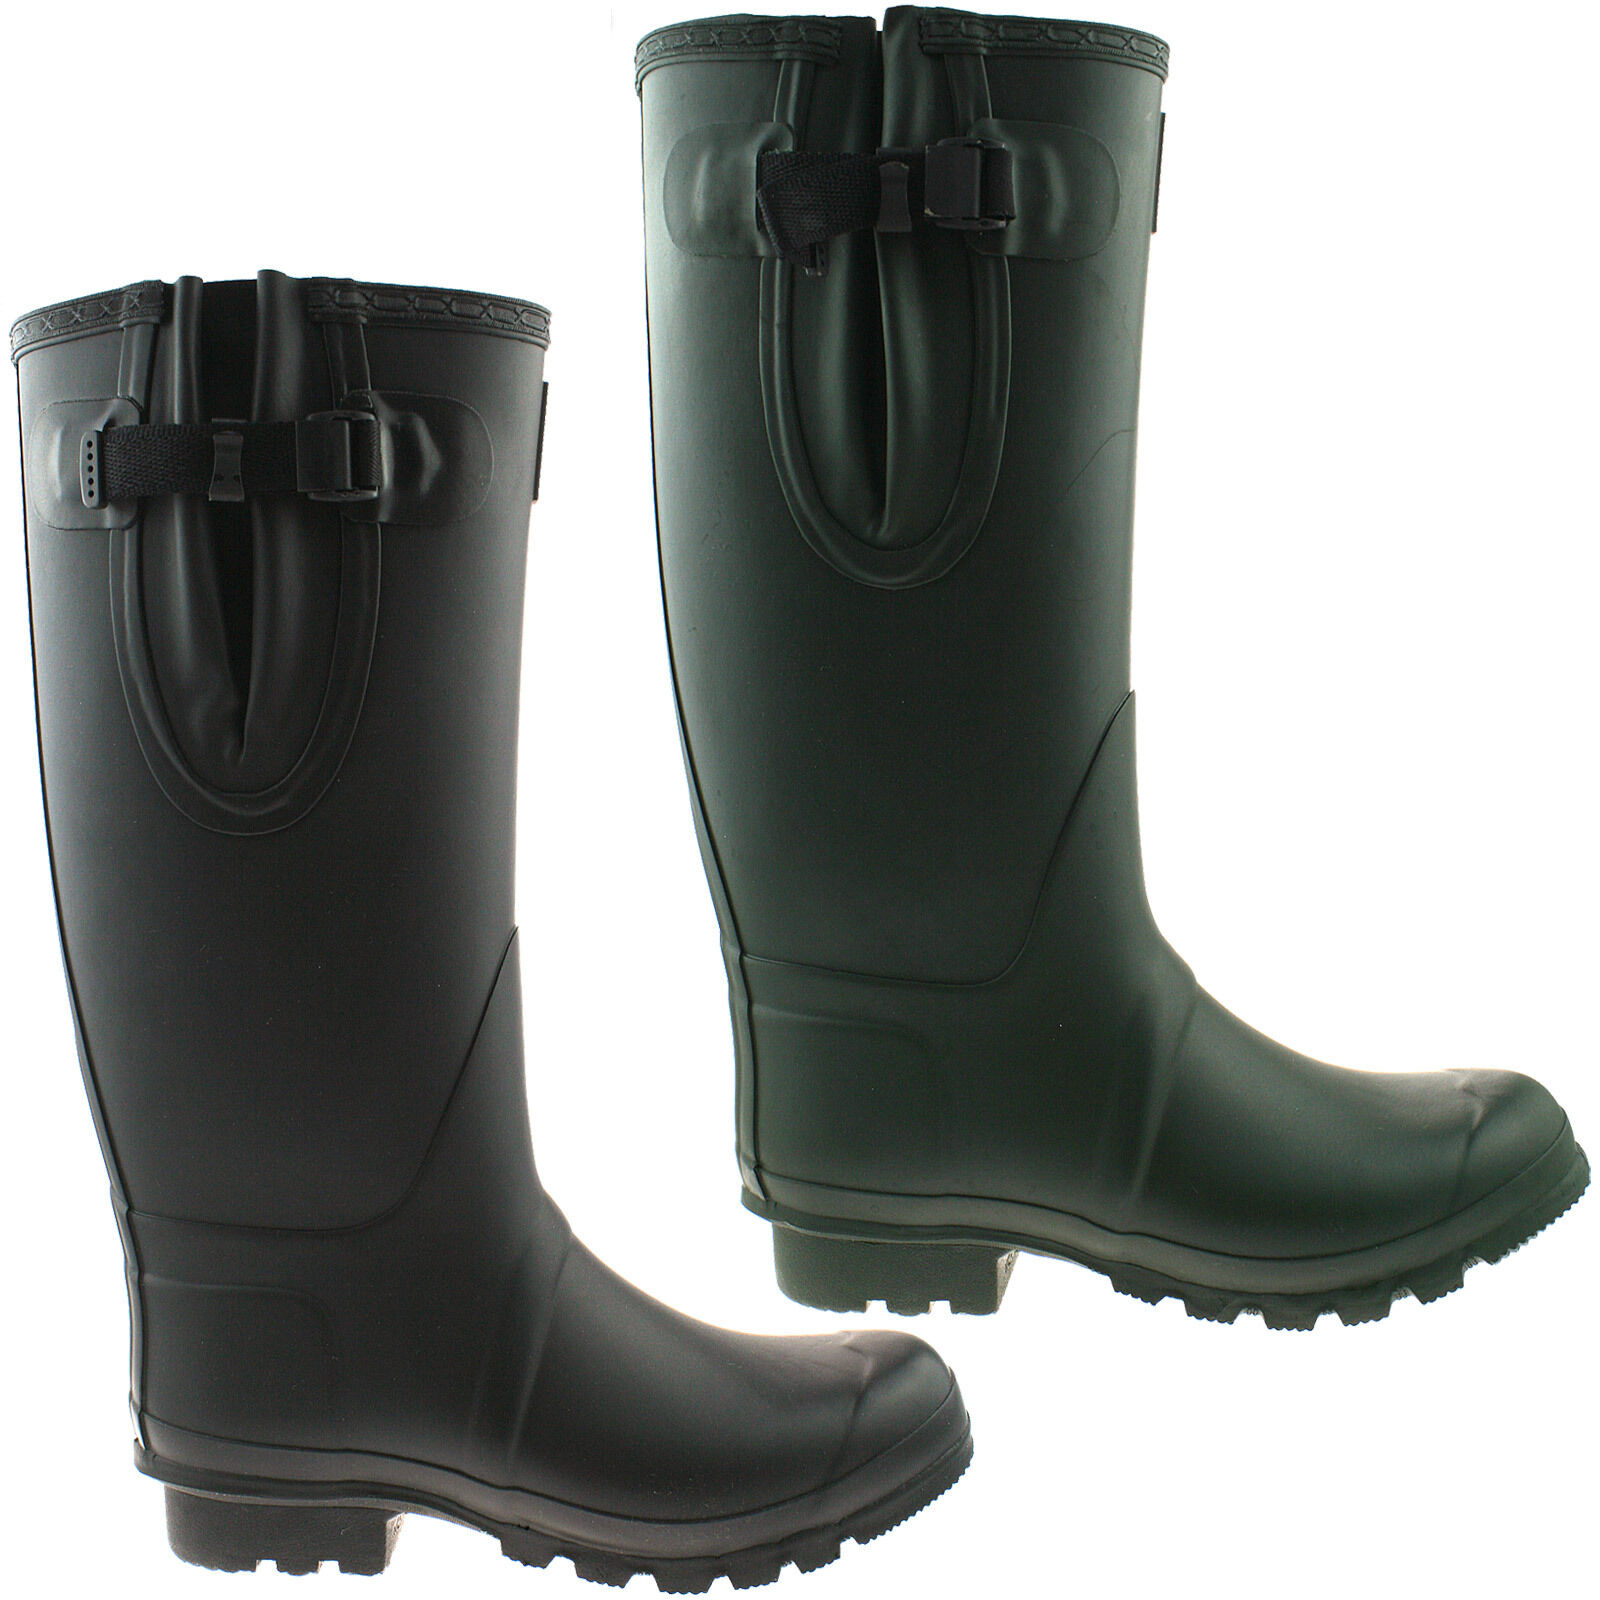 Herren WOODLAND NEOPRENE LINED WELLINGTONS SIZE UK 3 THERMAL - 15 THERMAL 3 WELLIES W258 KD b02e7c